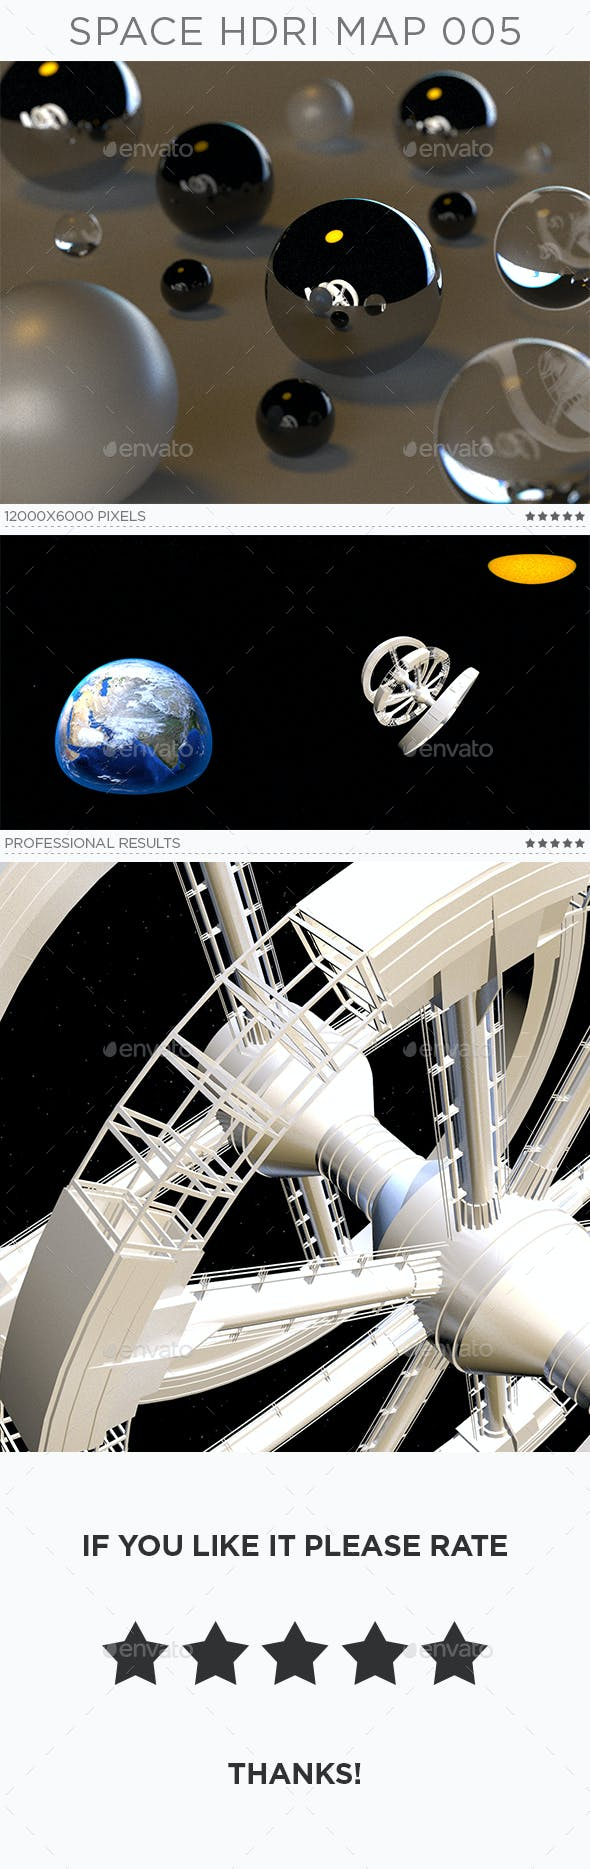 Space HDRi Map 005 - 3DOcean Item for Sale